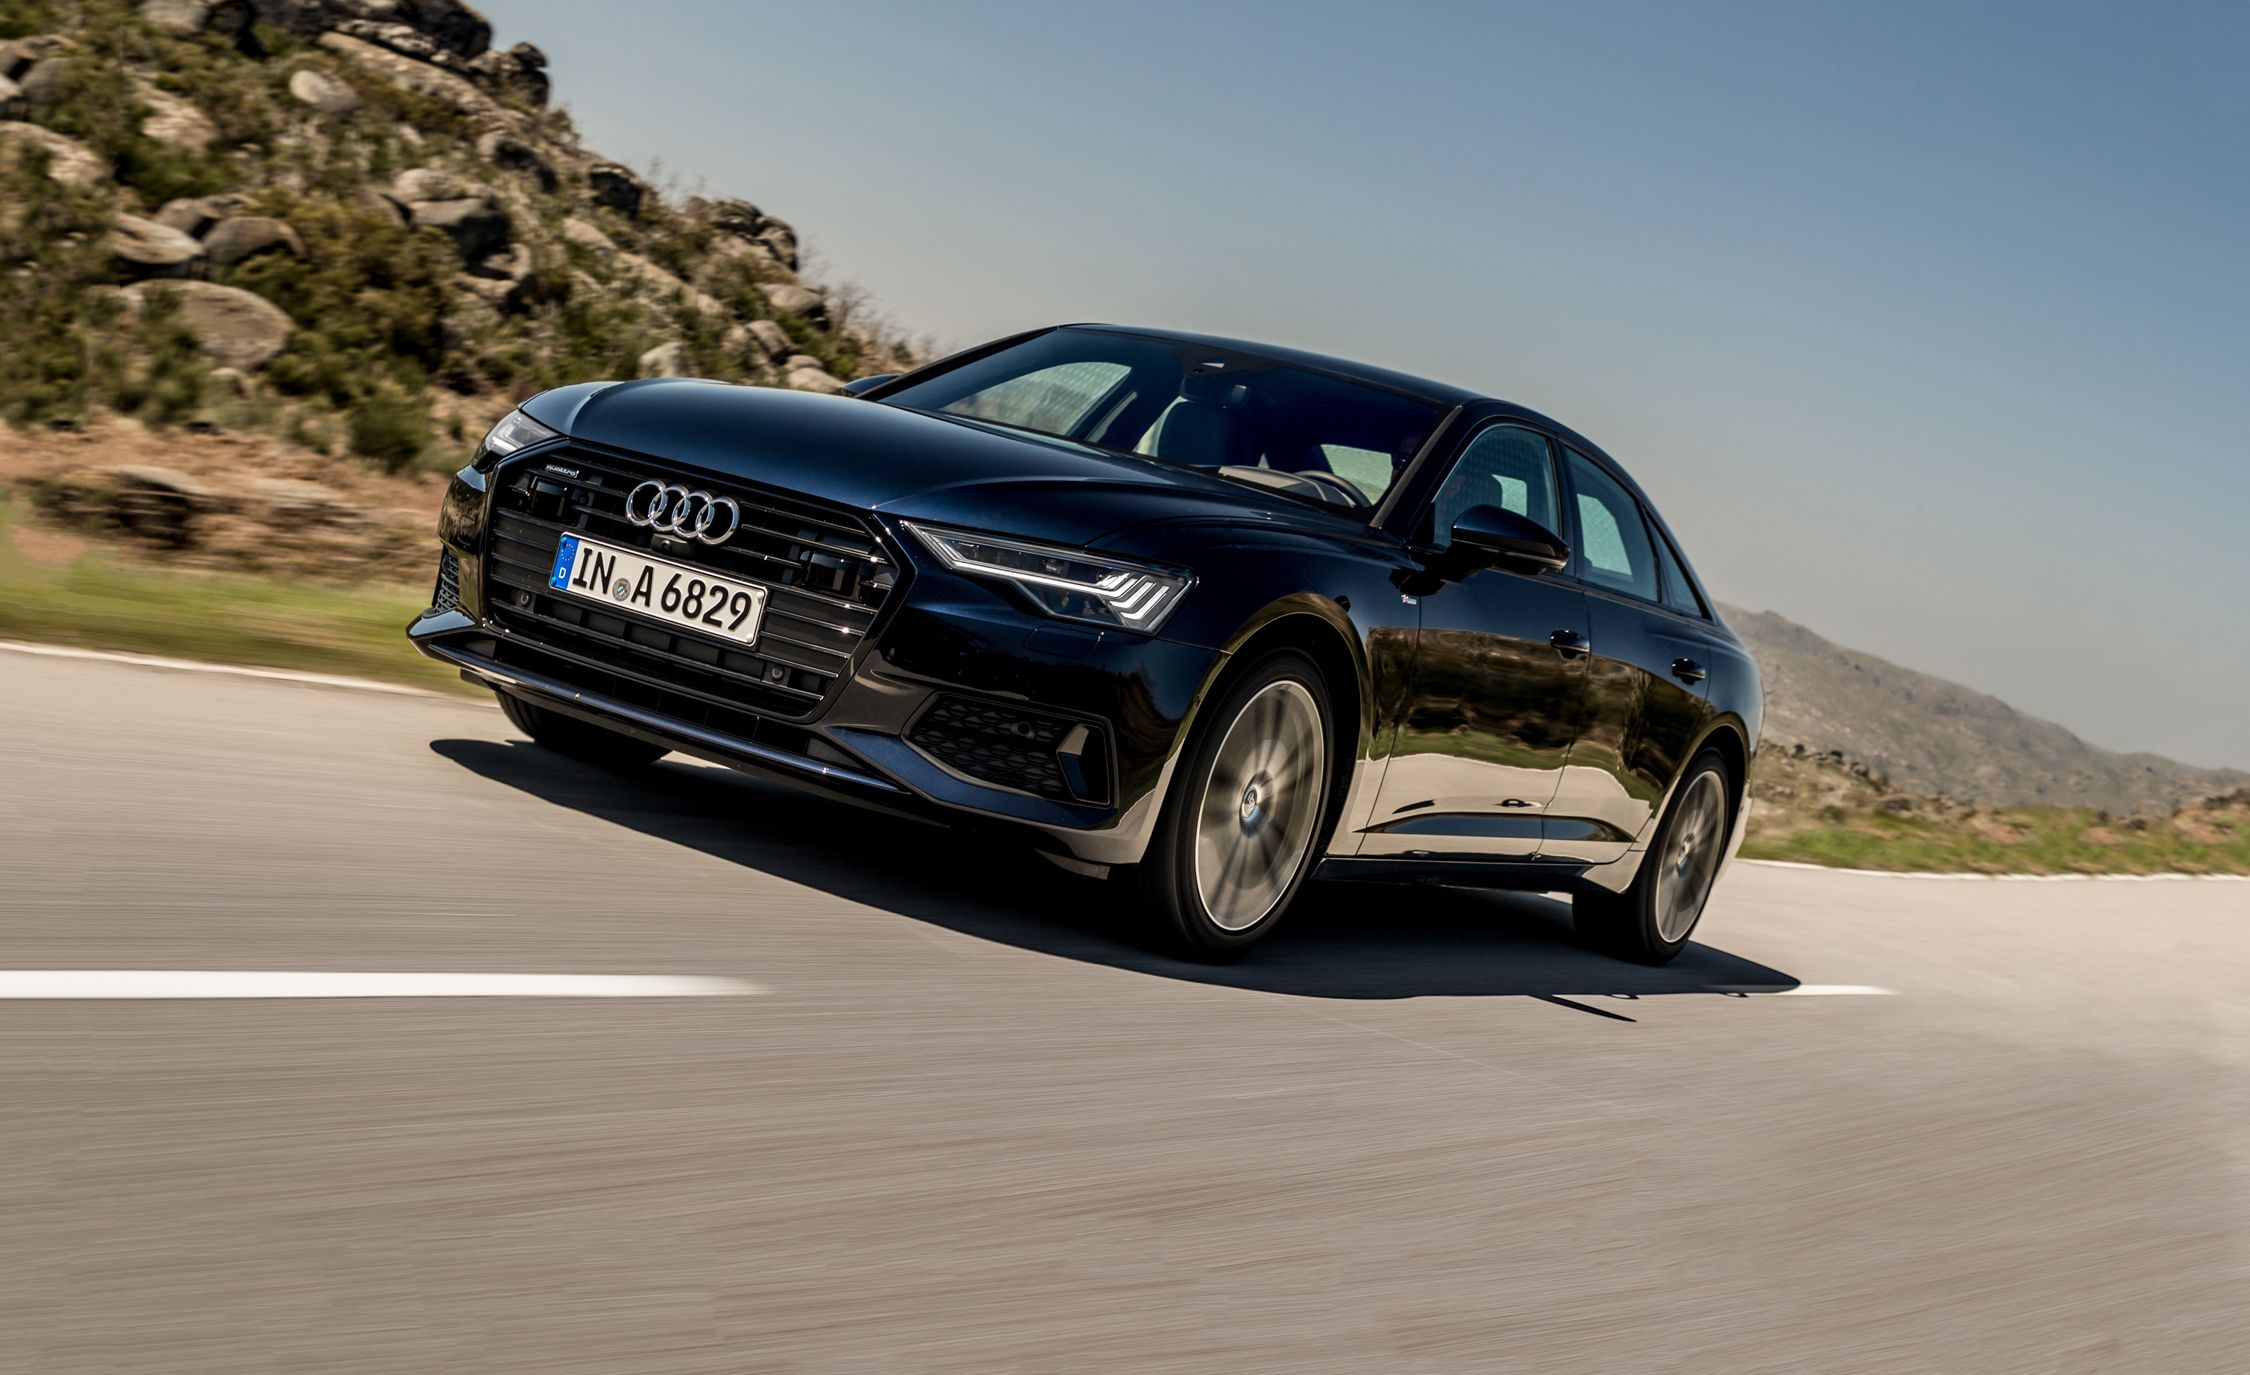 Audi S >> 2019 Audi A6 First Drive: Redesigned from the Inside Out | Review | Car and Driver